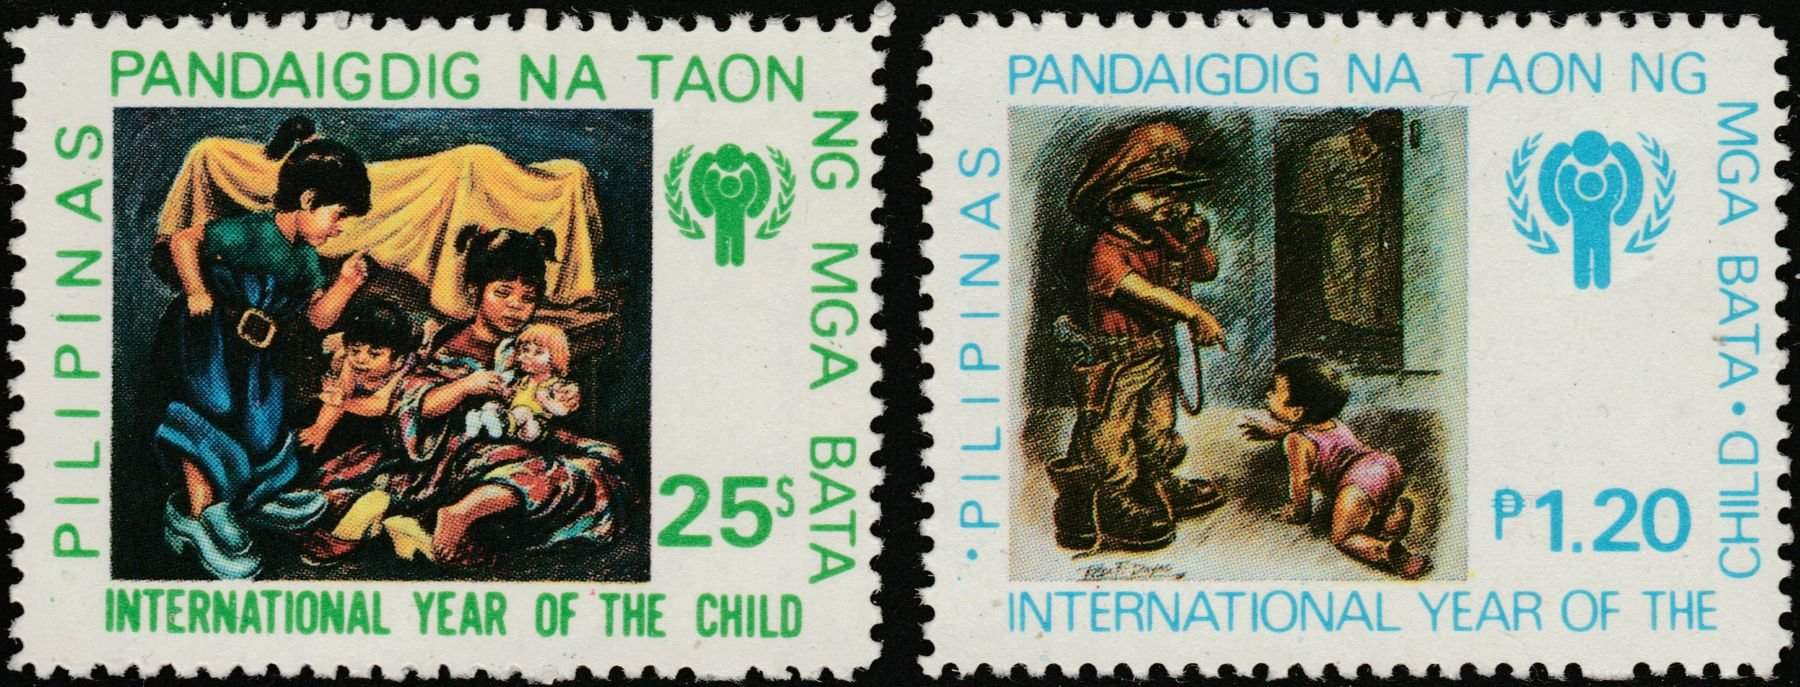 1979 Philippines International Year of the Child Postage Stamps